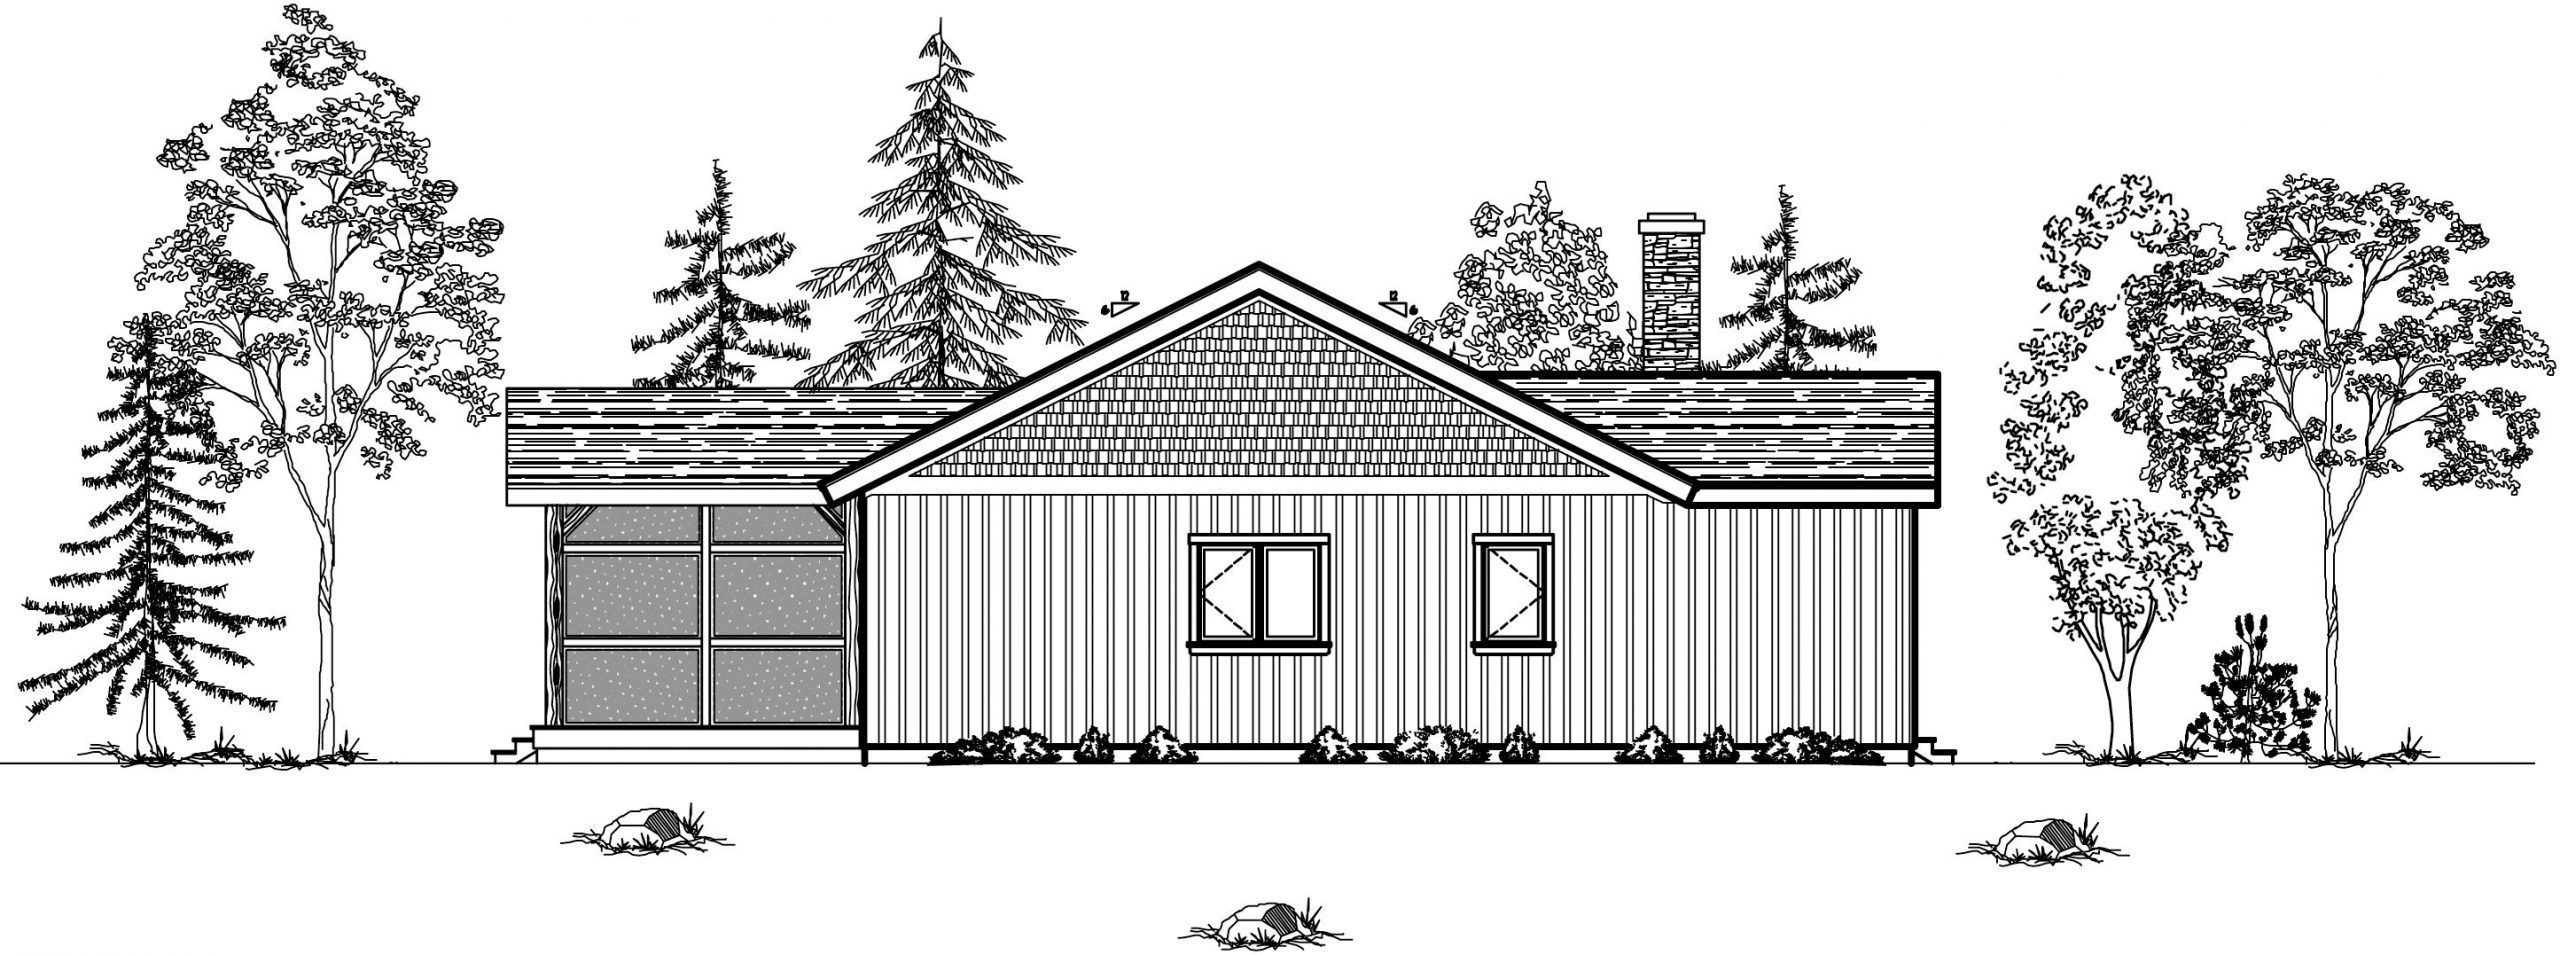 Normerica Timber Frames, House Plan, The Nipissing 3542, Rear Elevation